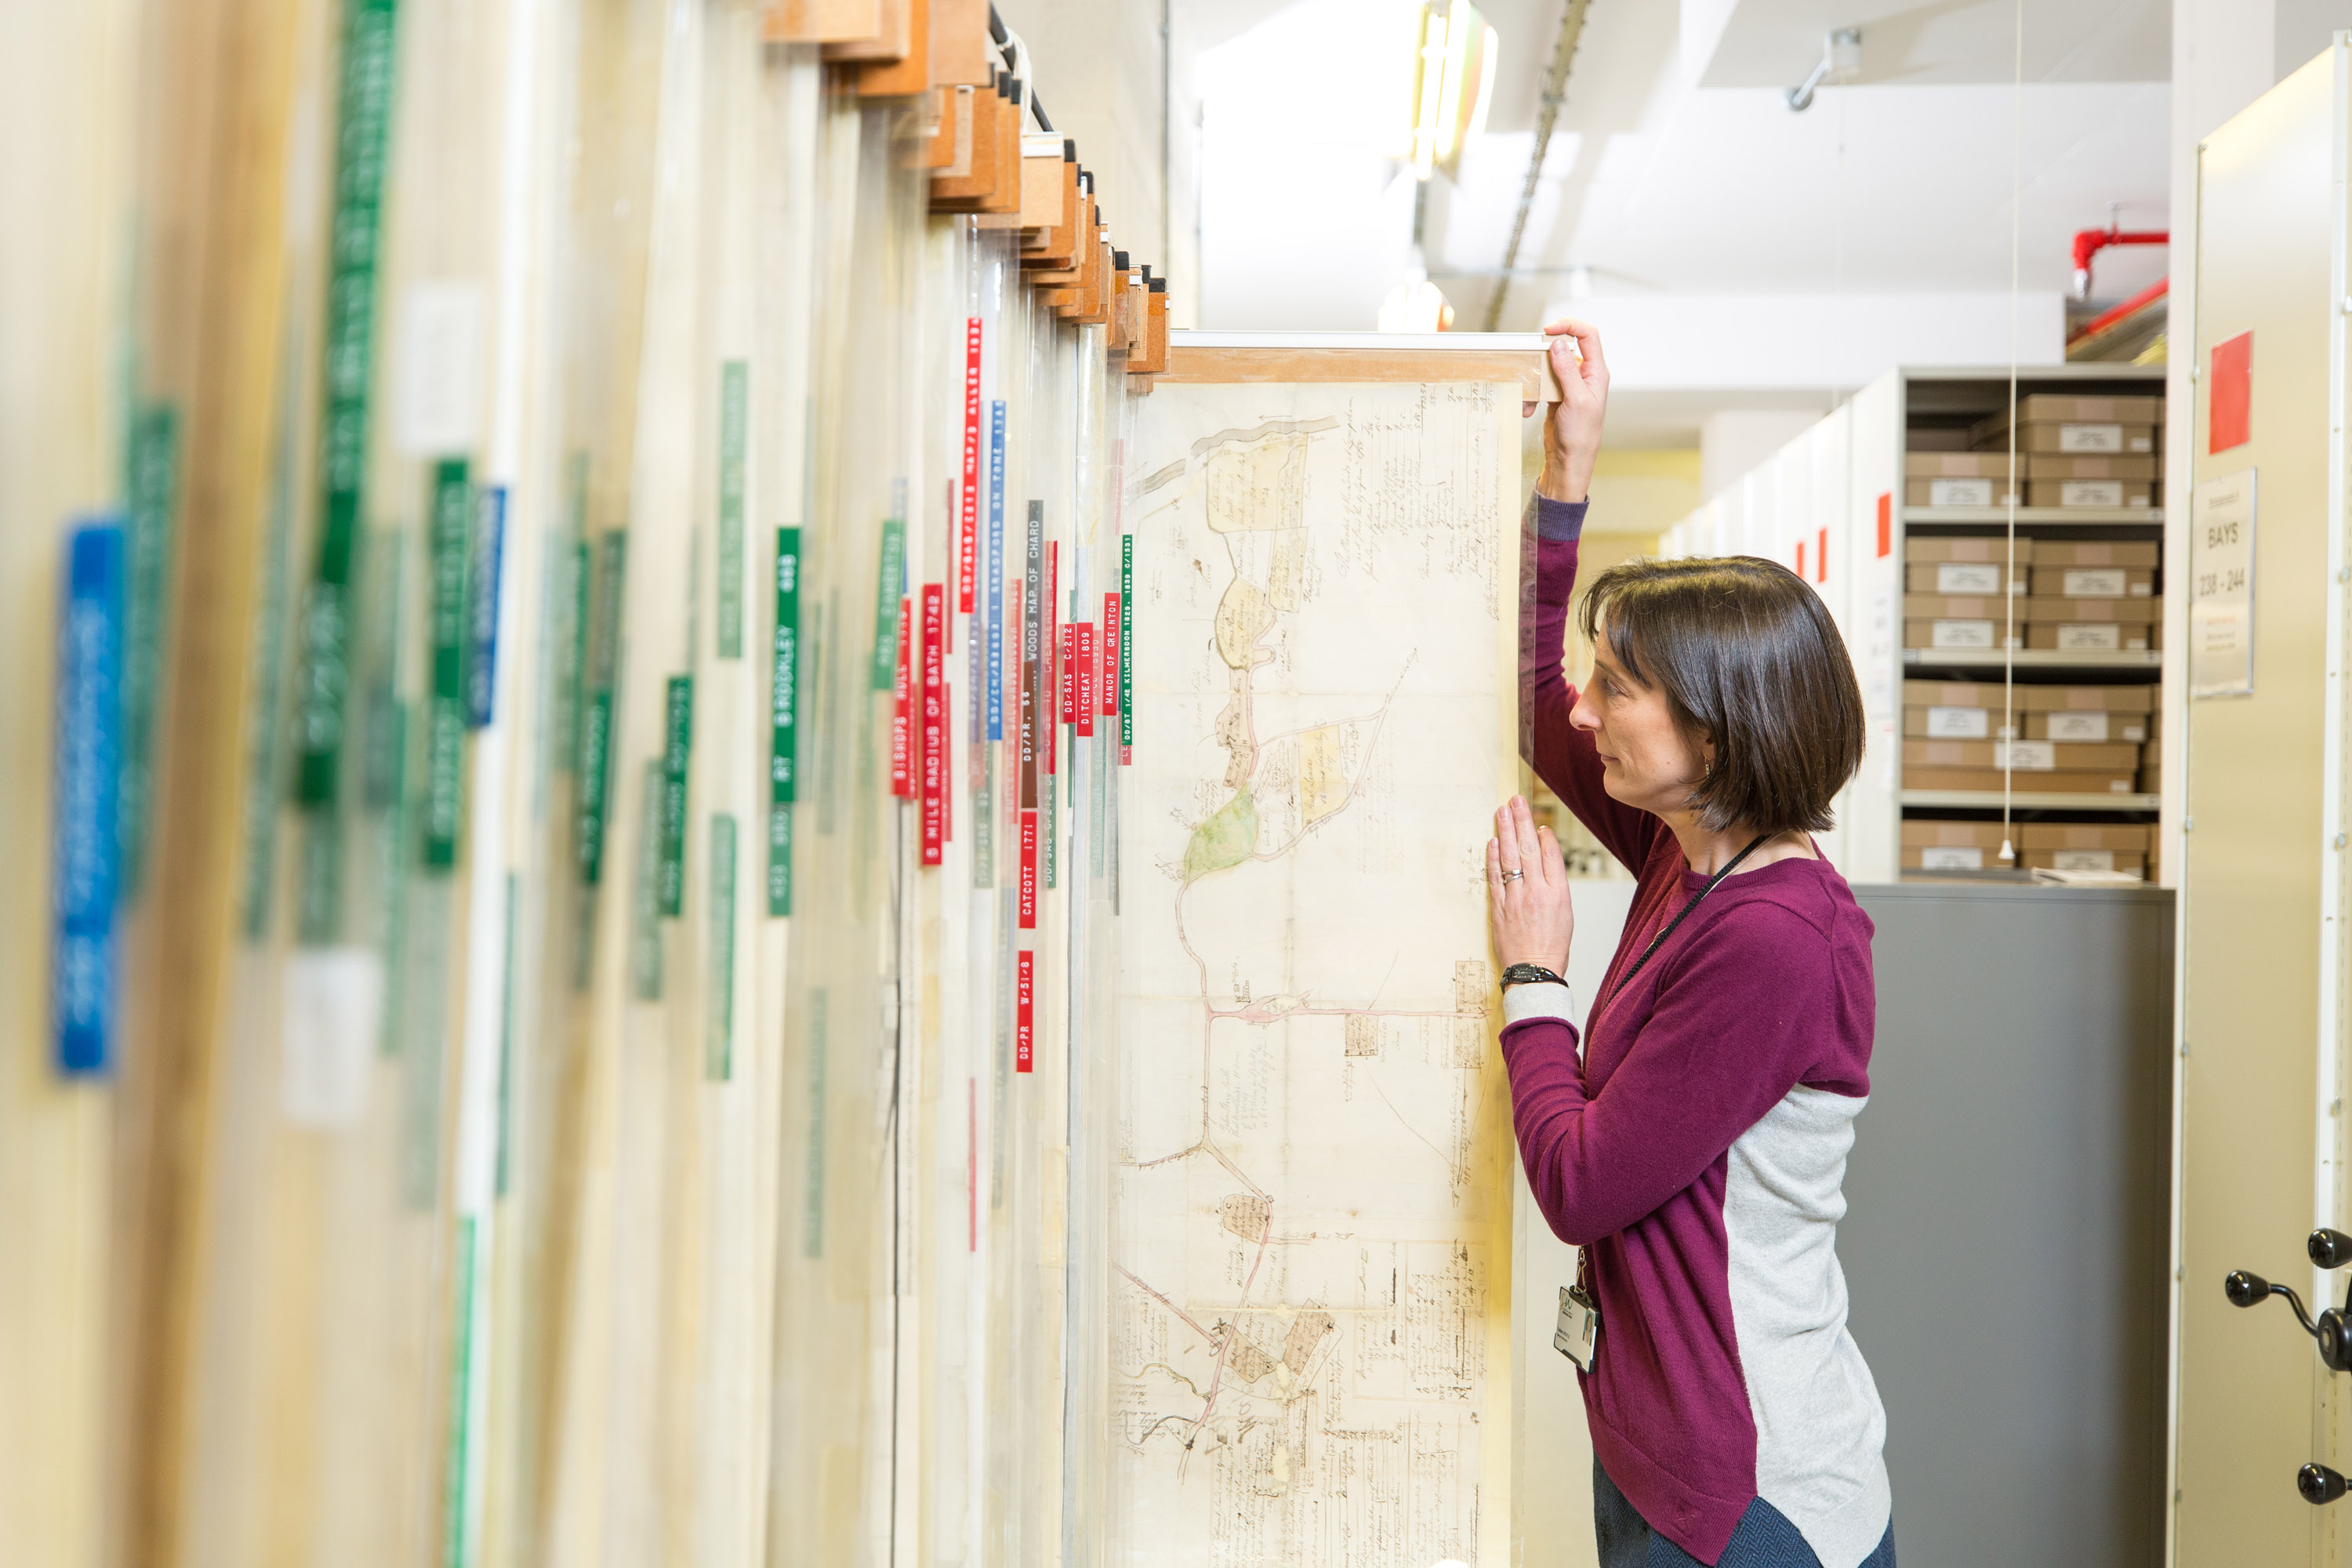 Archivist looking at map